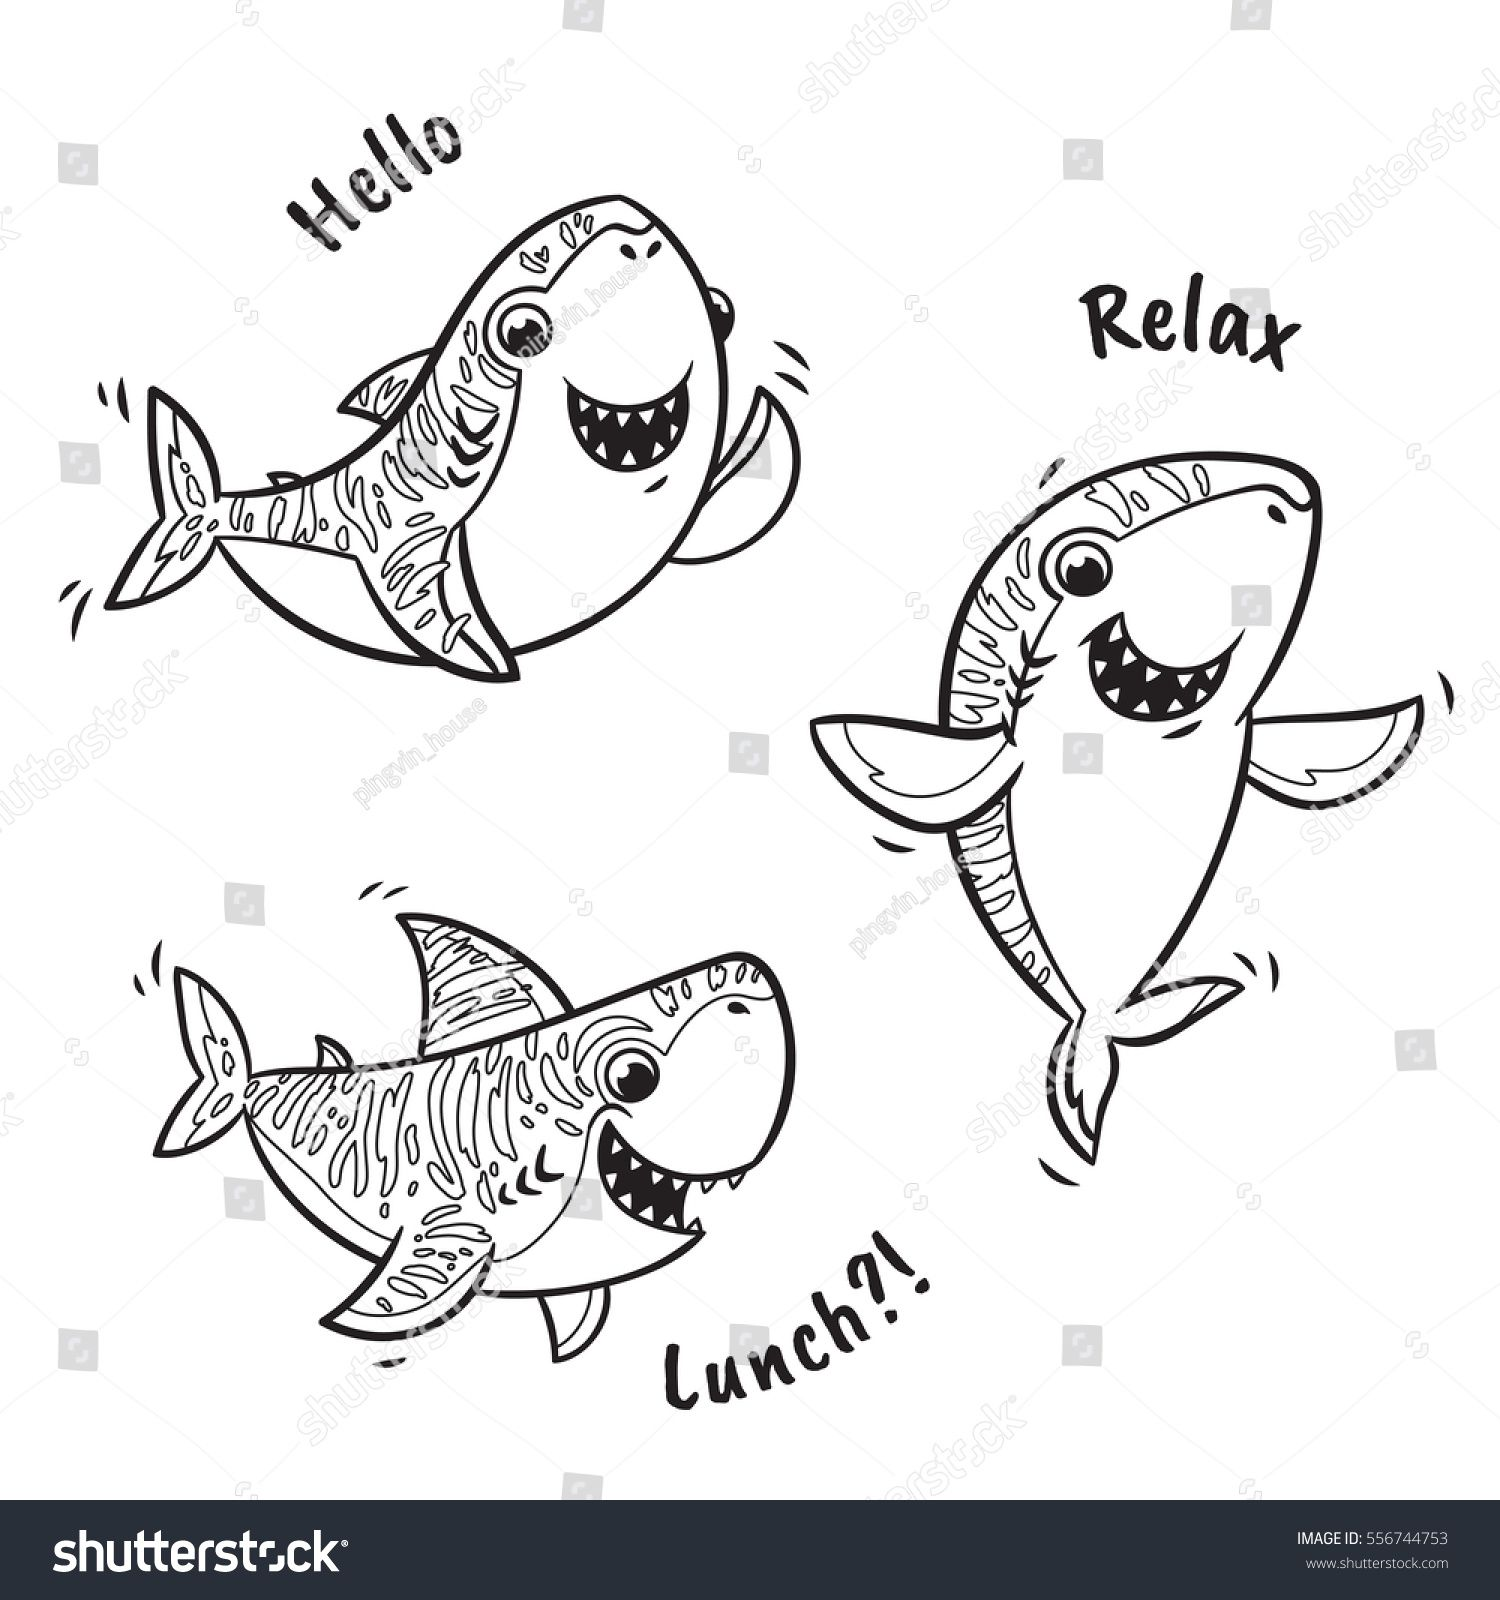 shark coloring page - Google Search | TEACH | Pinterest | Shark ...